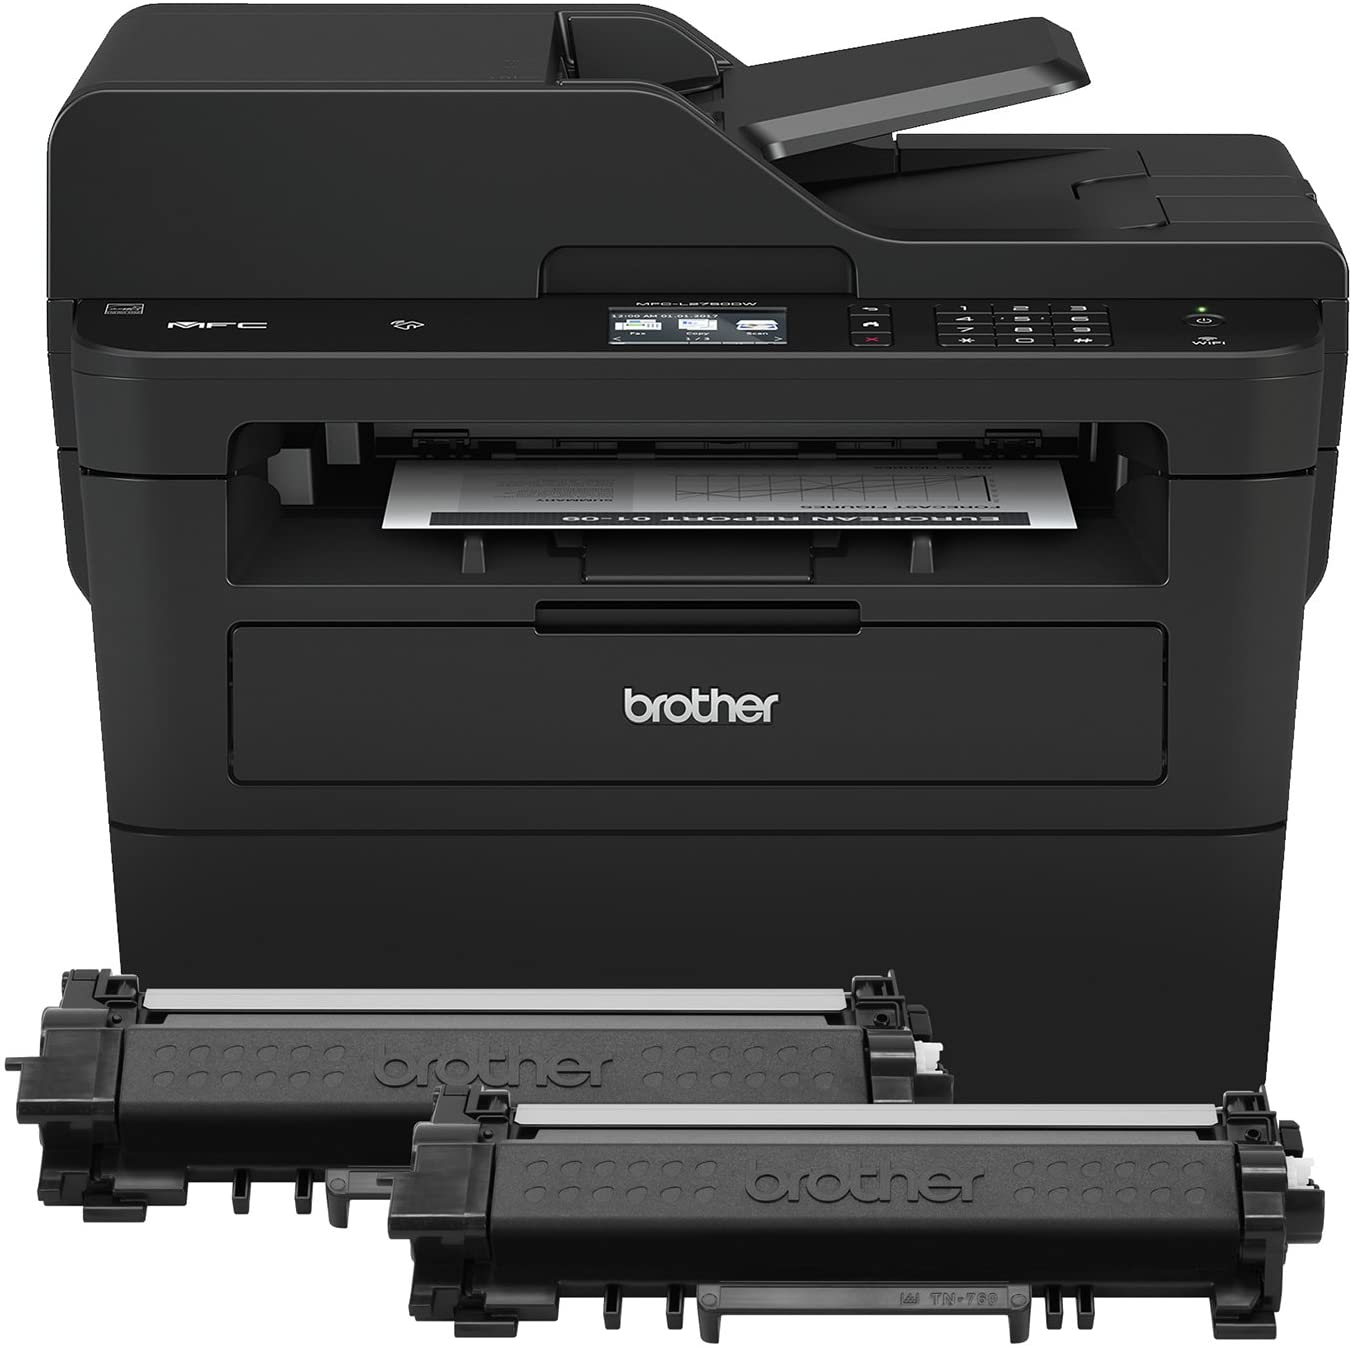 Brother Compact Monochrome Laser All-in-One Multi-function Printer, MFCL2750DWXL, Up to Two Years of Printing Included, Amazon Dash Replenishment Ready